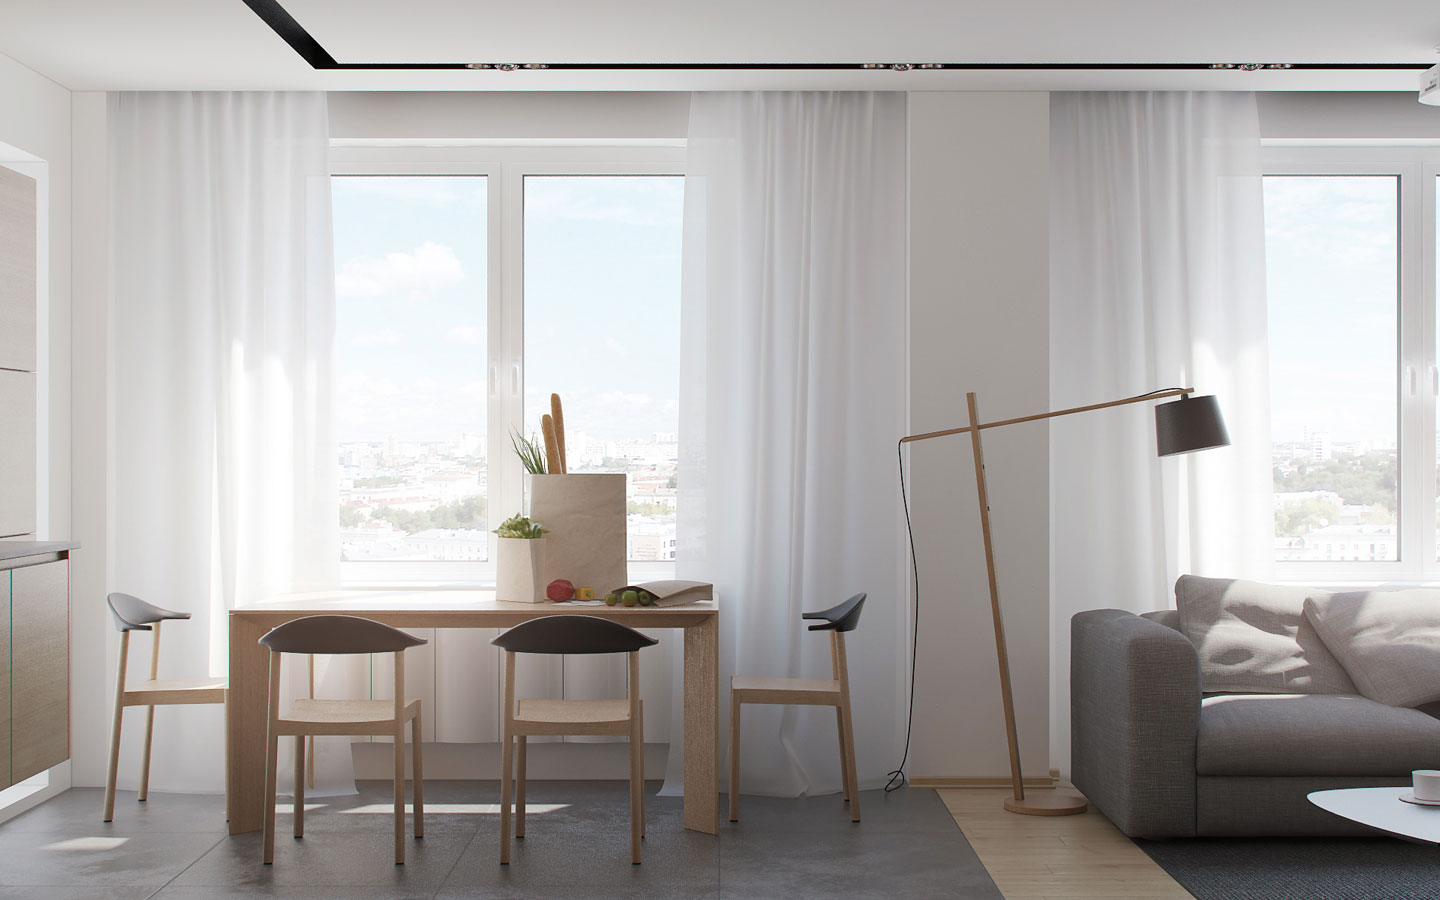 Simple Scandinavian Dining Room - 5 ideas for a one bedroom apartment with study includes floor plans